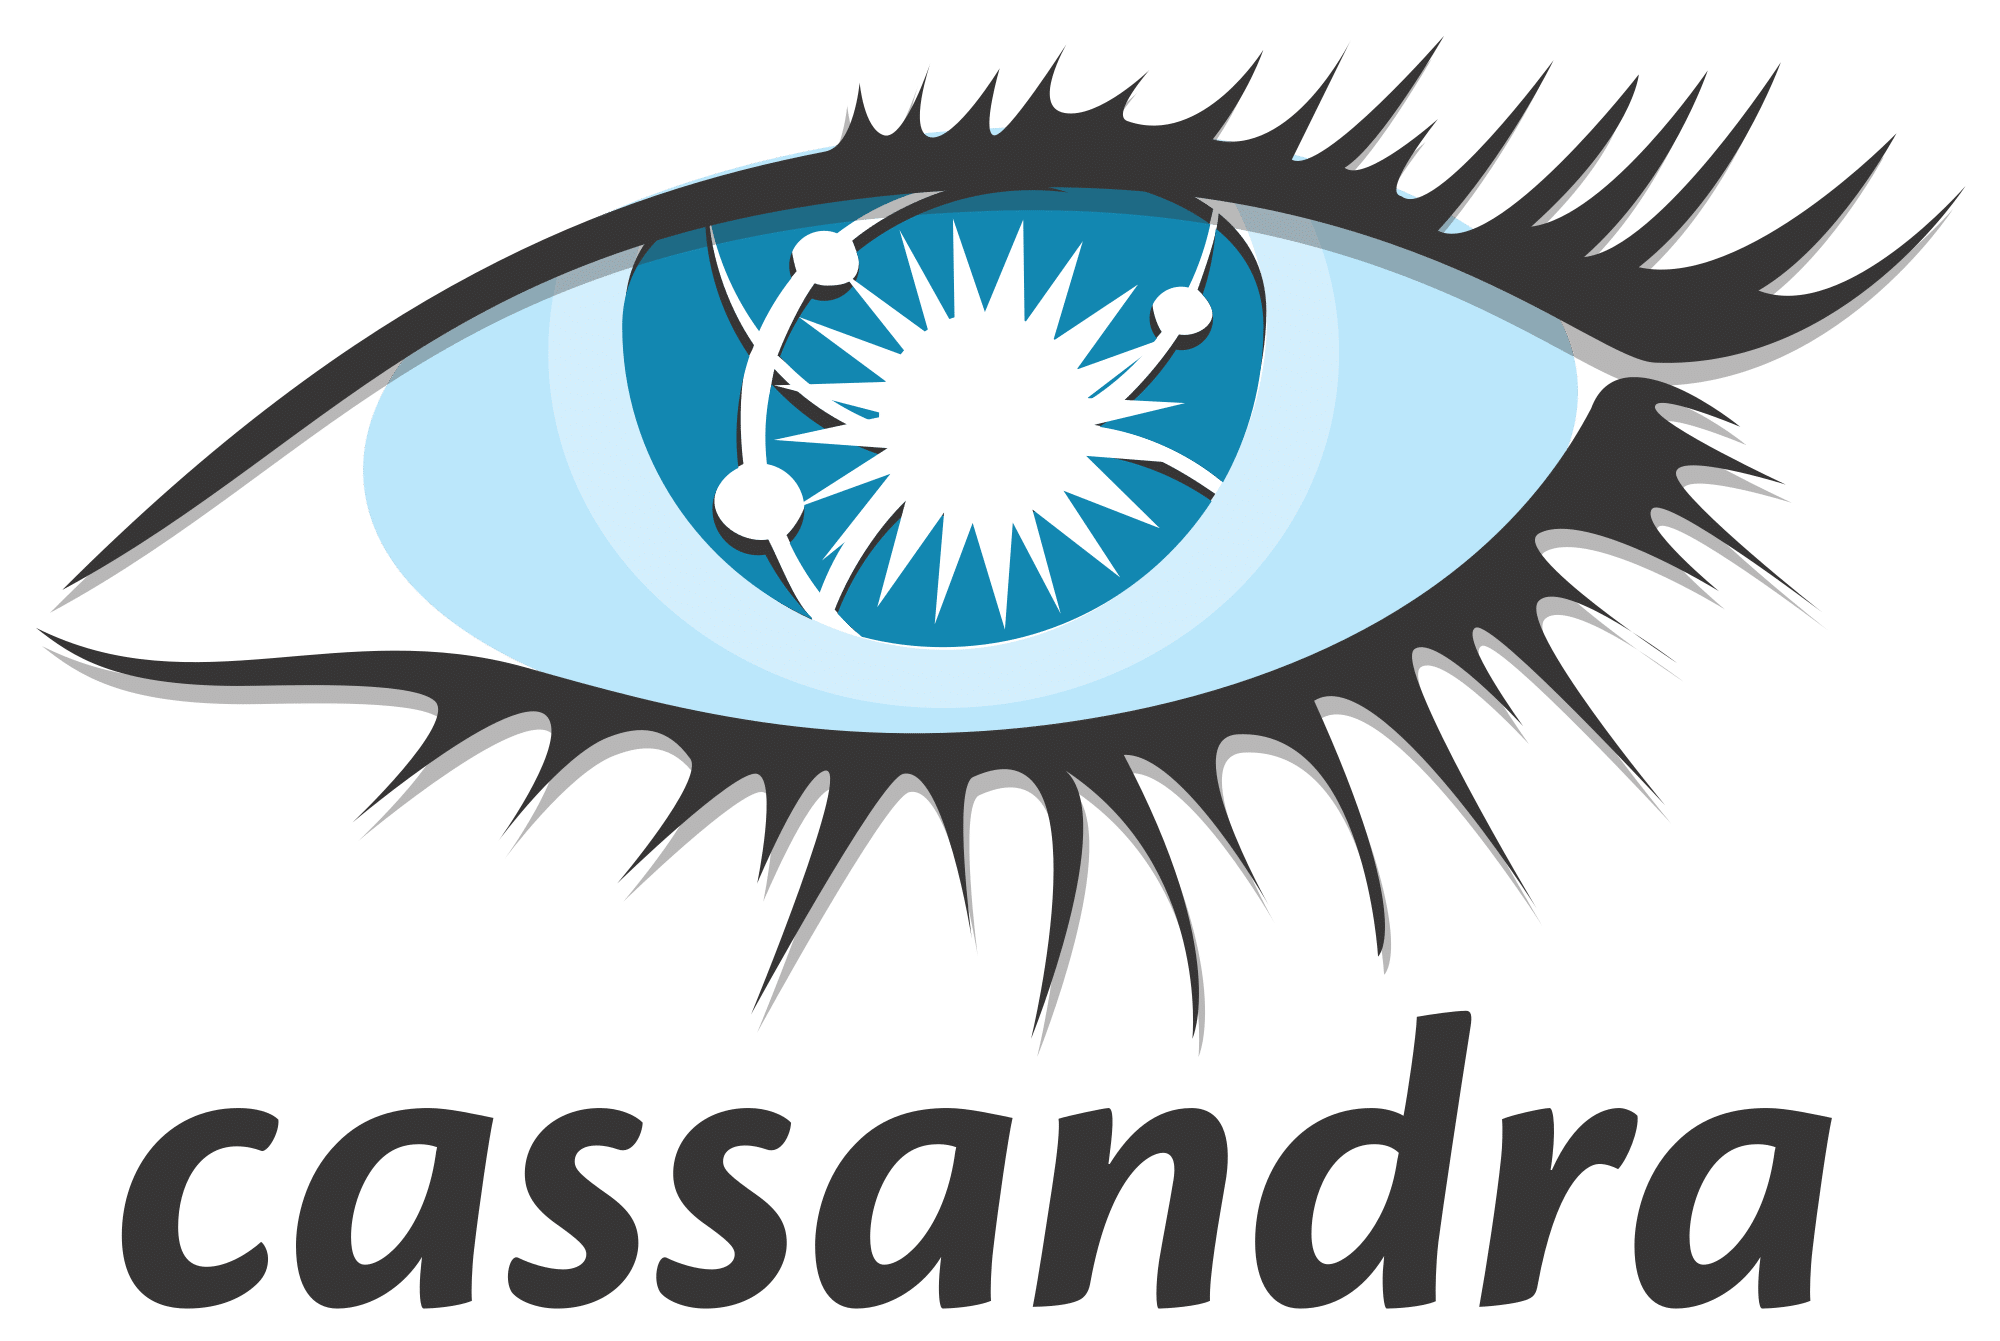 Cassandra software